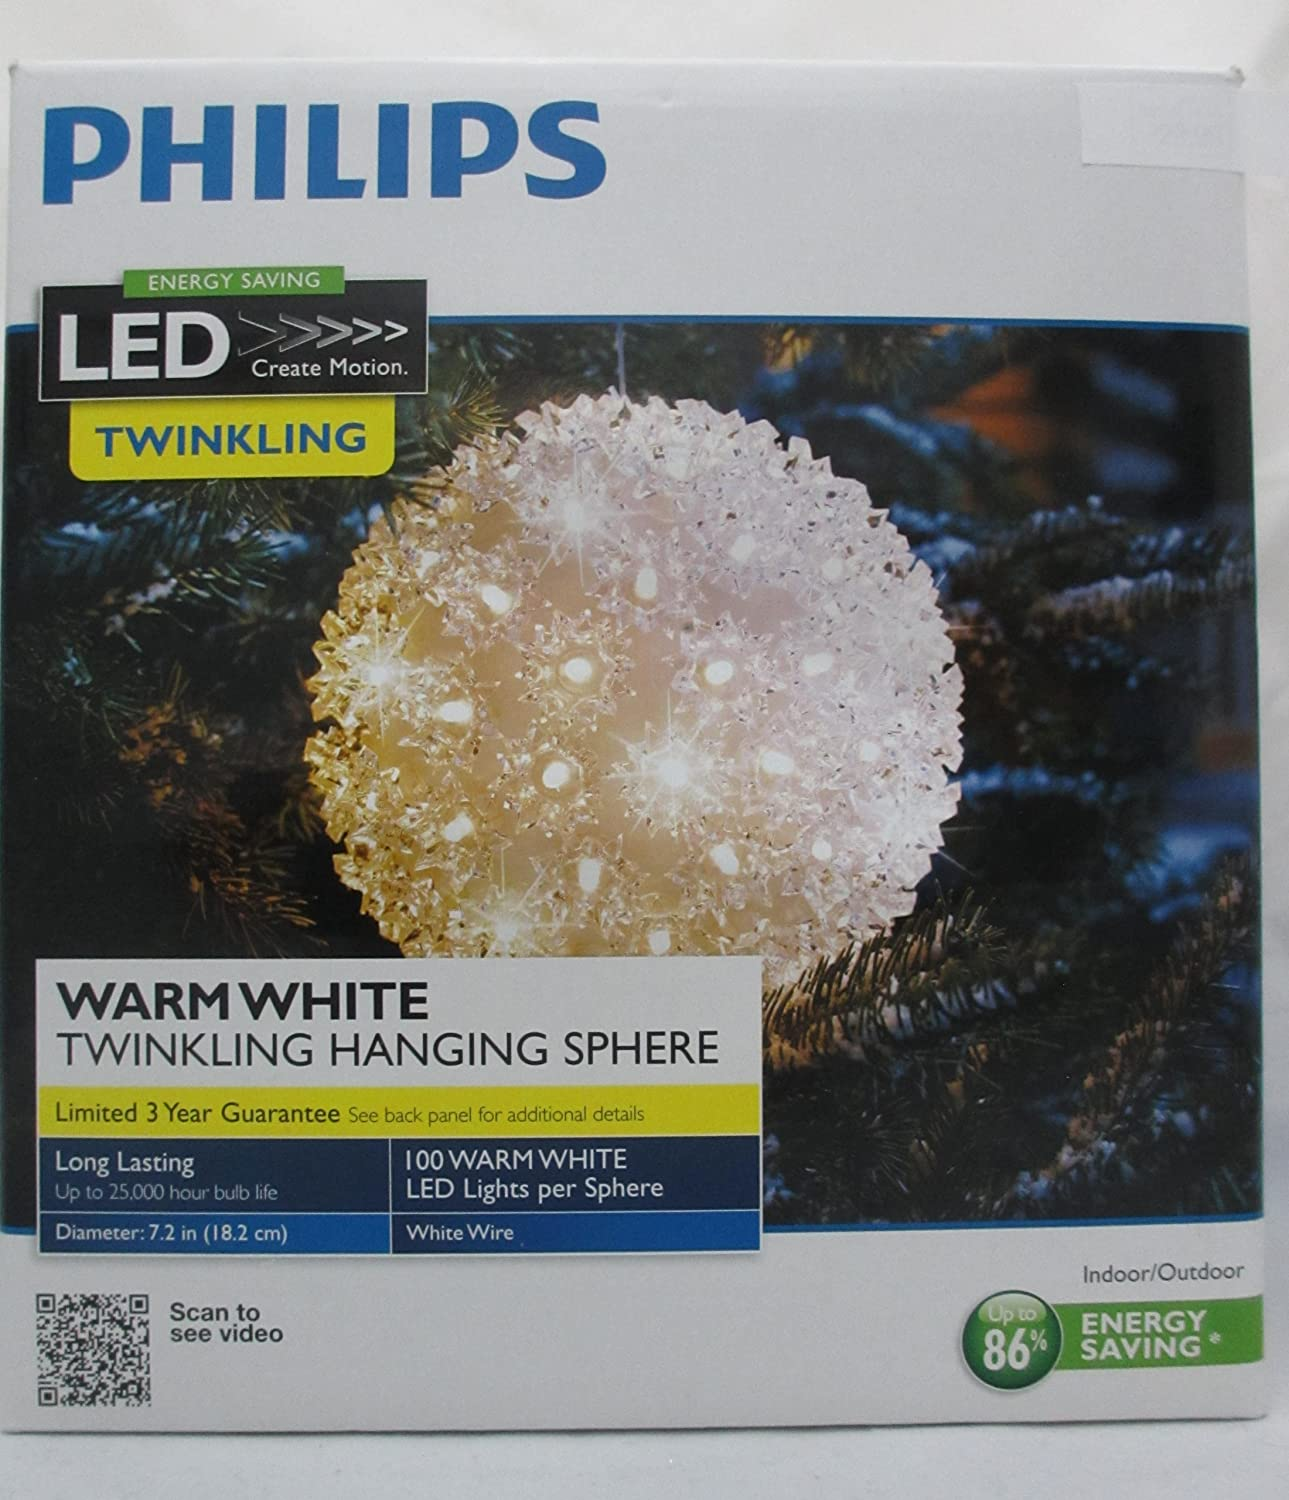 amazoncom philips 100 led energy saving warm white twinkling hanging sphere indoor outdoor christmas decoration large tree ornament holiday decorative